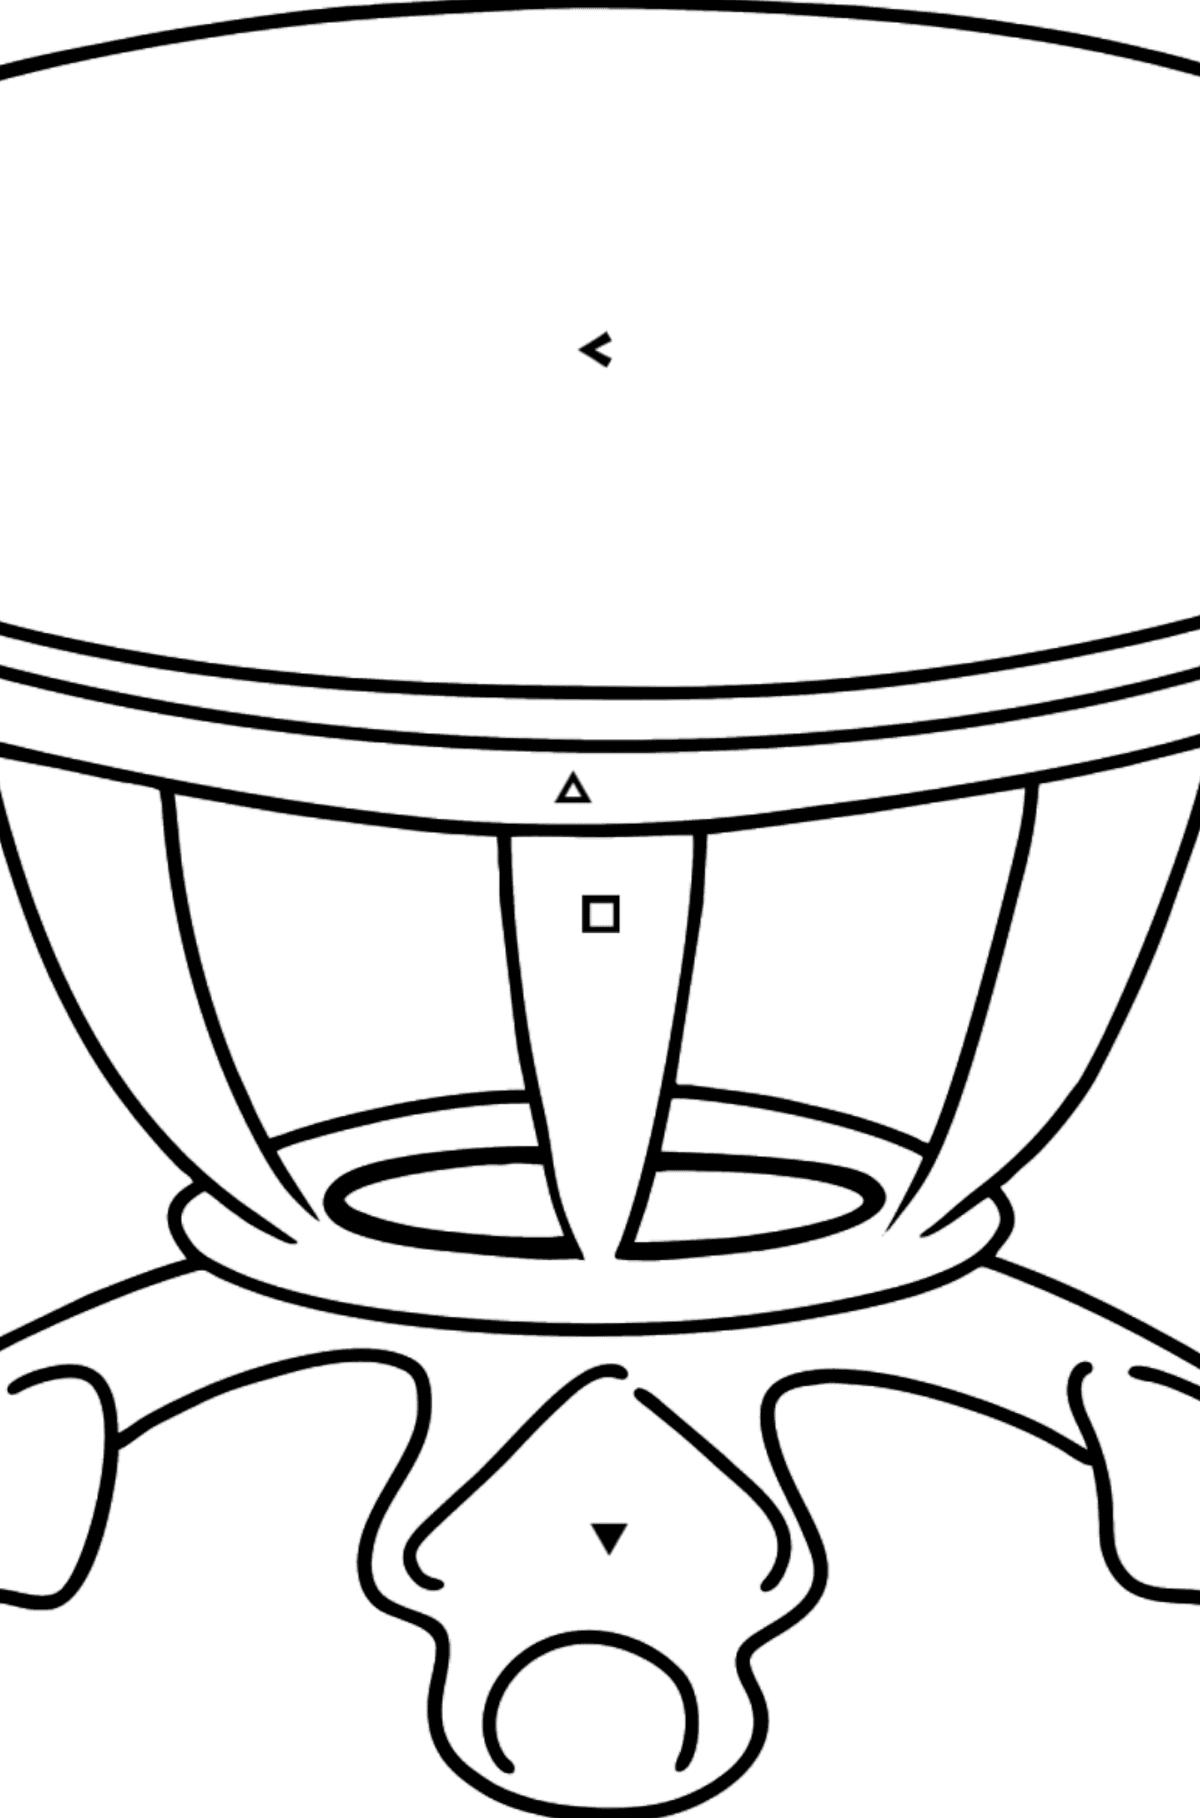 Dining Table coloring page - Coloring by Symbols for Kids